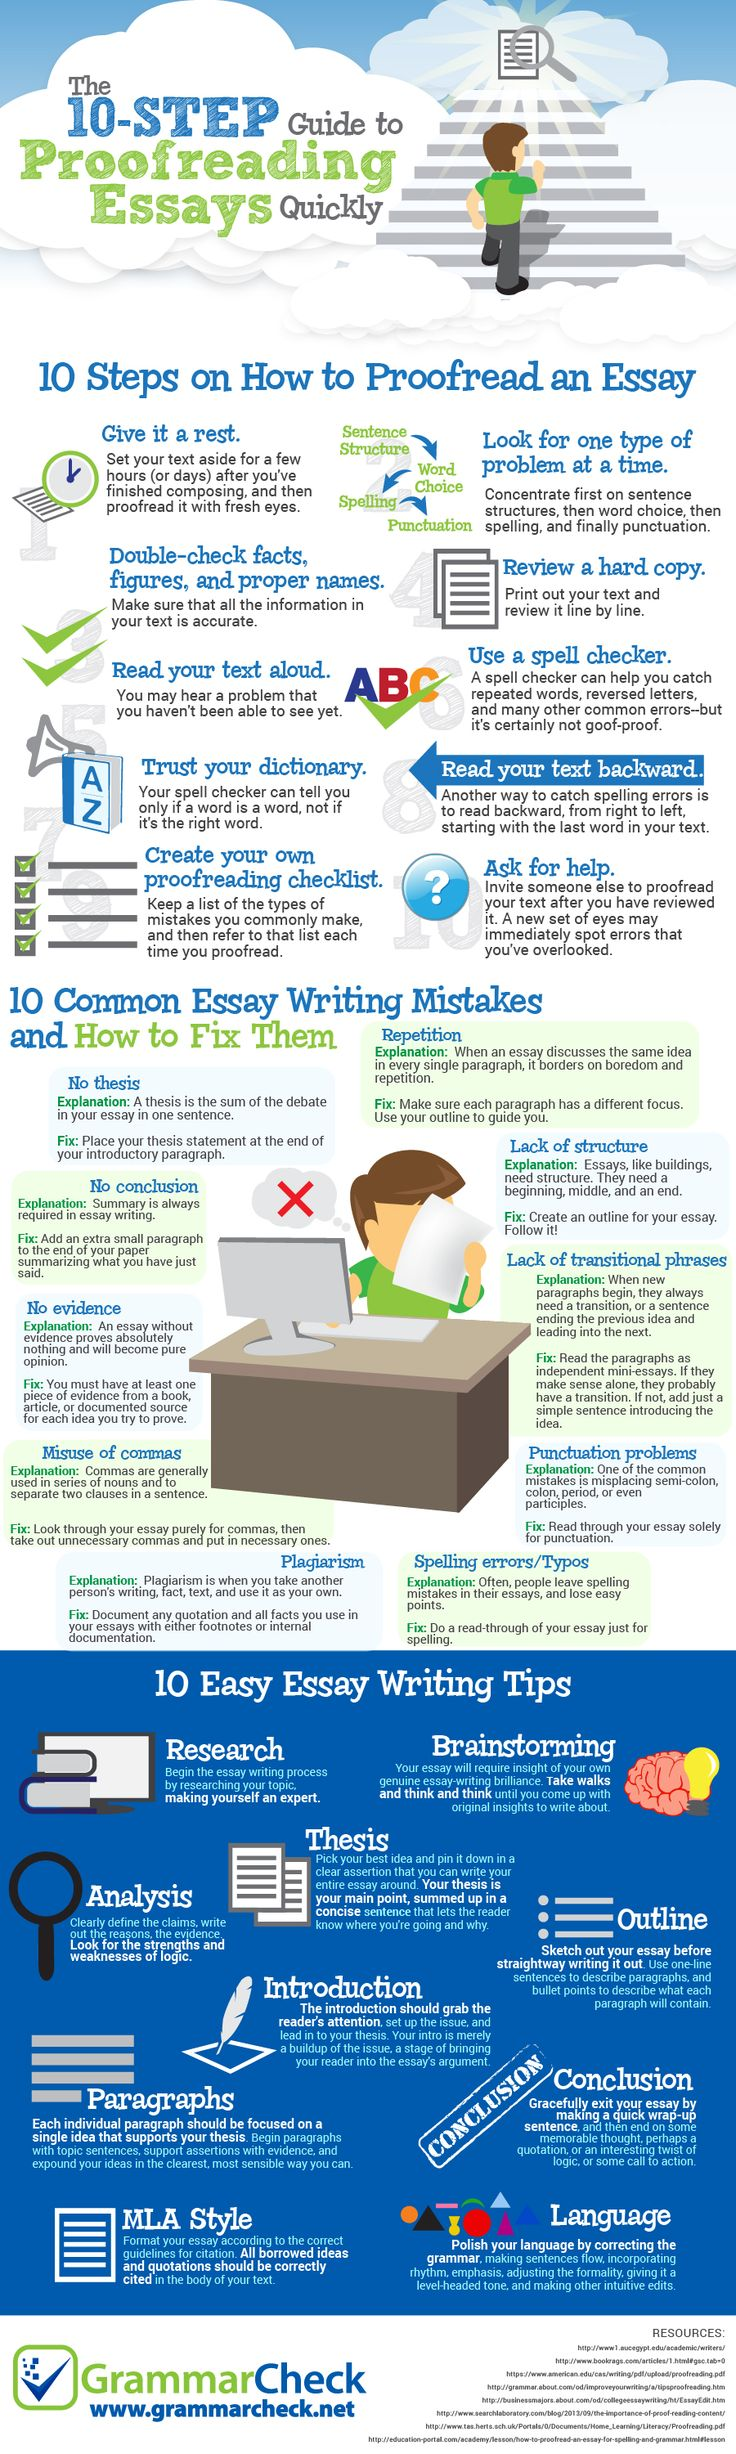 17 best ideas about essay writing essay writing very helpful however conclusions should also make larger connections and drive home why your